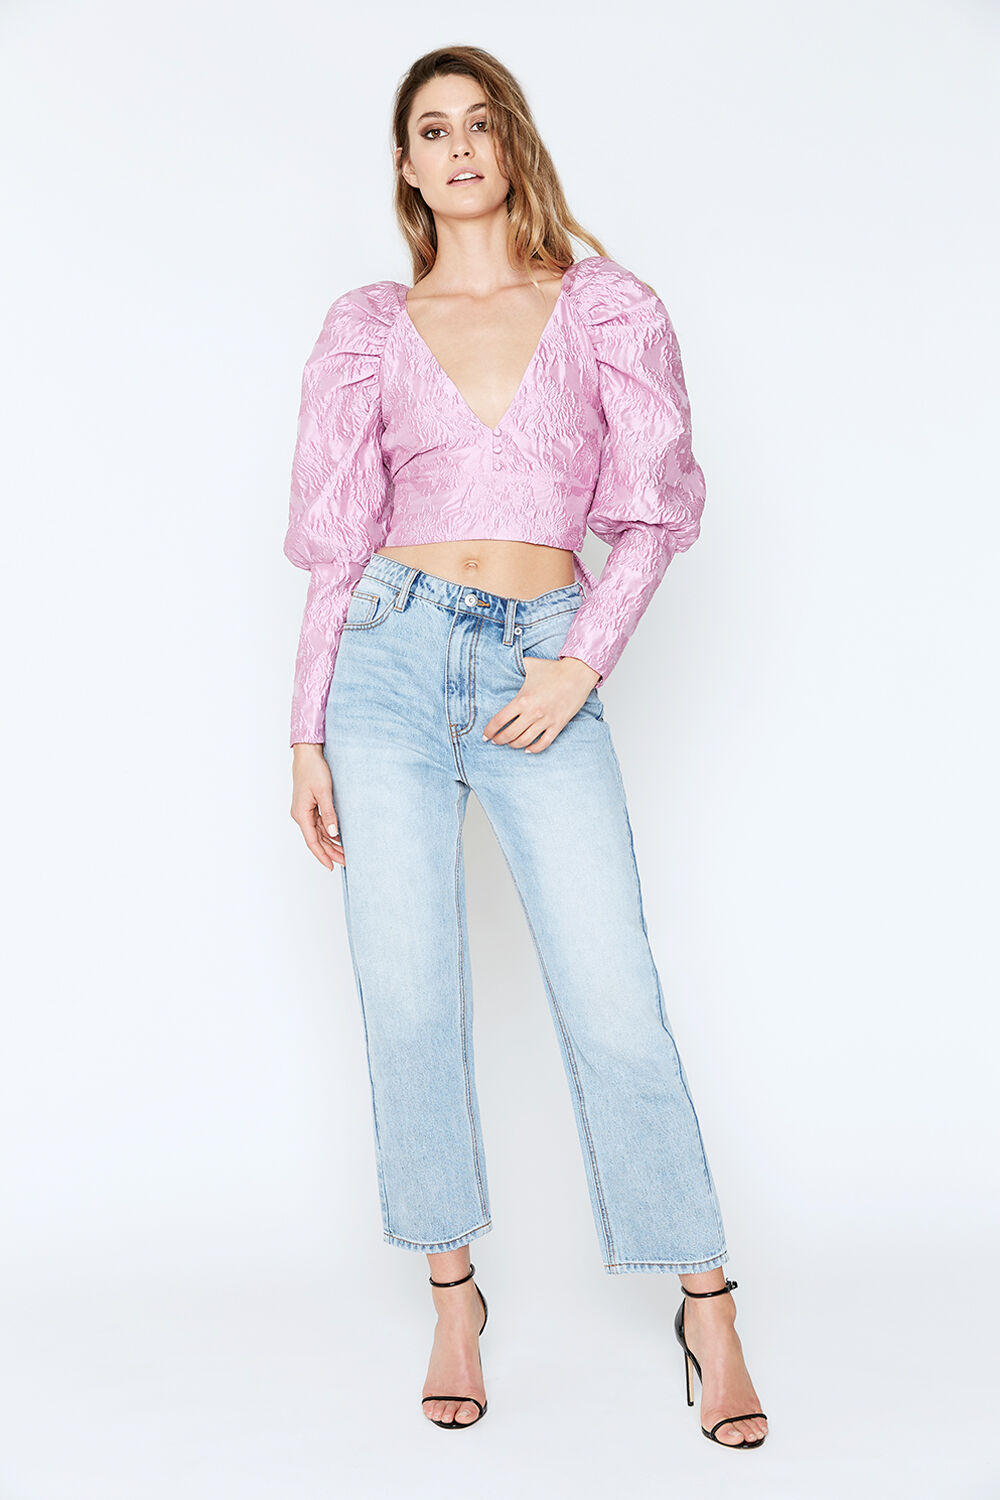 LORIANA TOP in colour LILAC SNOW